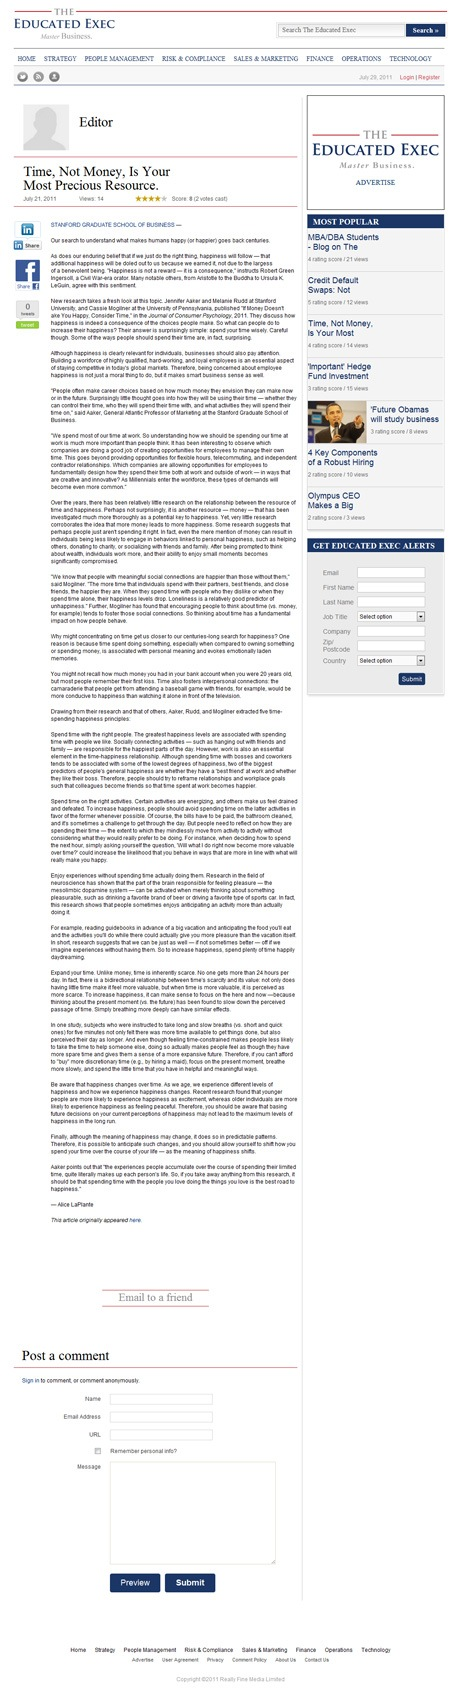 The Educated Exec Blog Individual Article Page